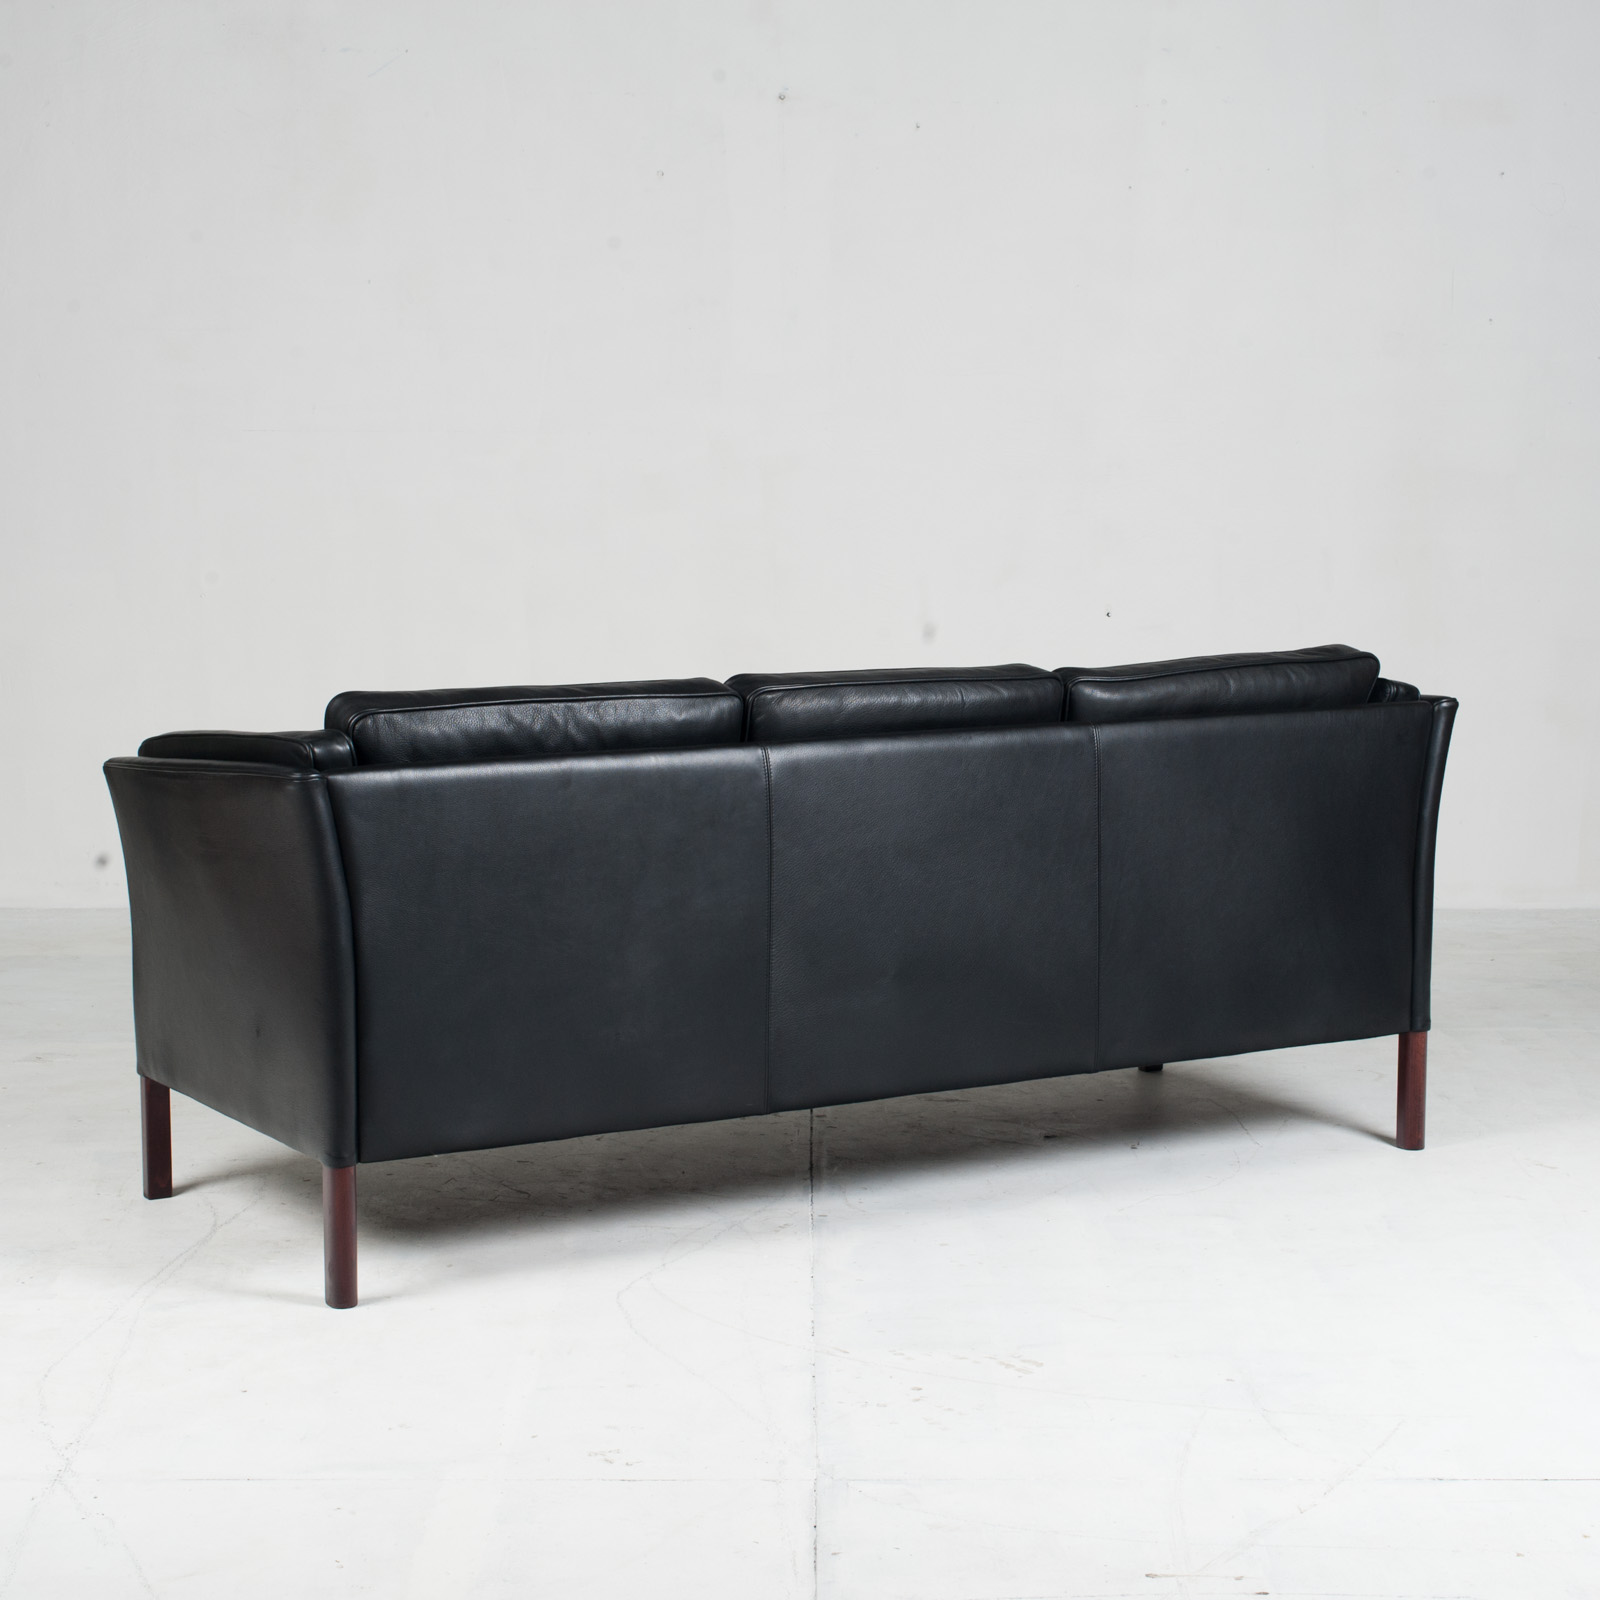 3 Seat Sofa In Black Aniline Leather 1960s Denmark 12